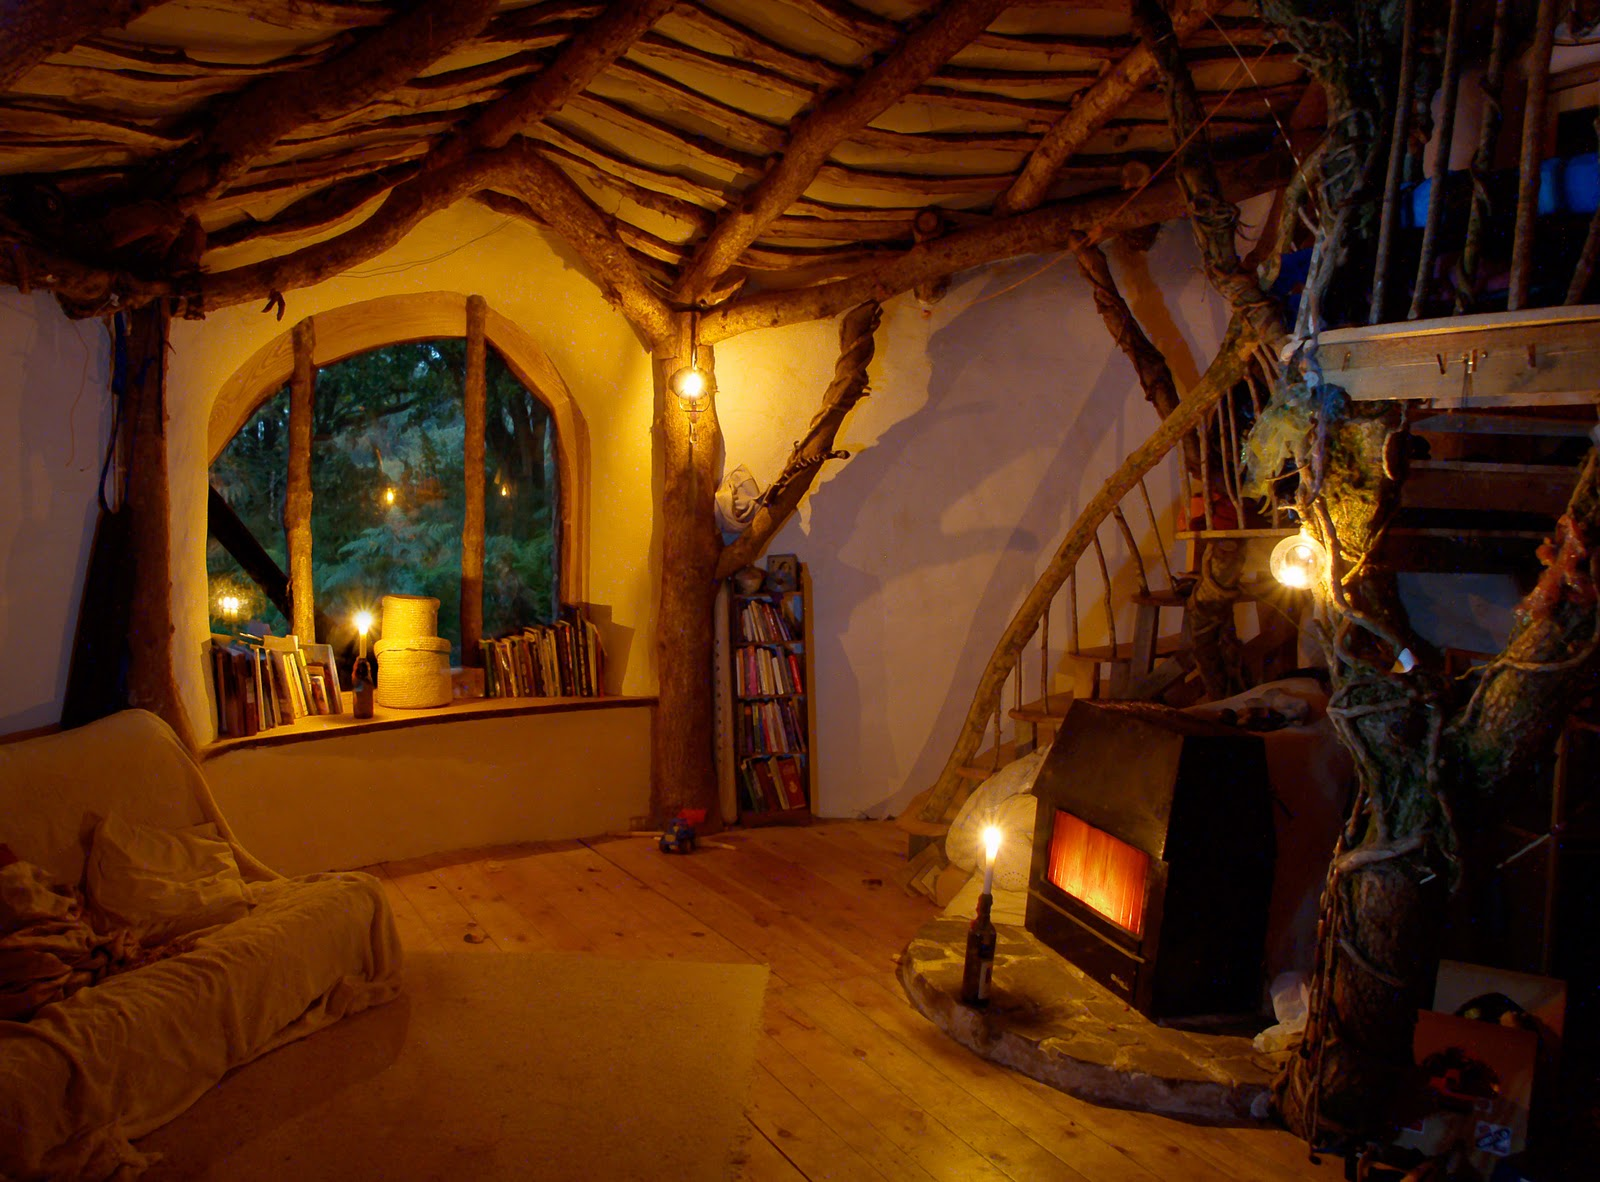 Eclectitude A Hobbit House In Wales Interiors Inside Ideas Interiors design about Everything [magnanprojects.com]